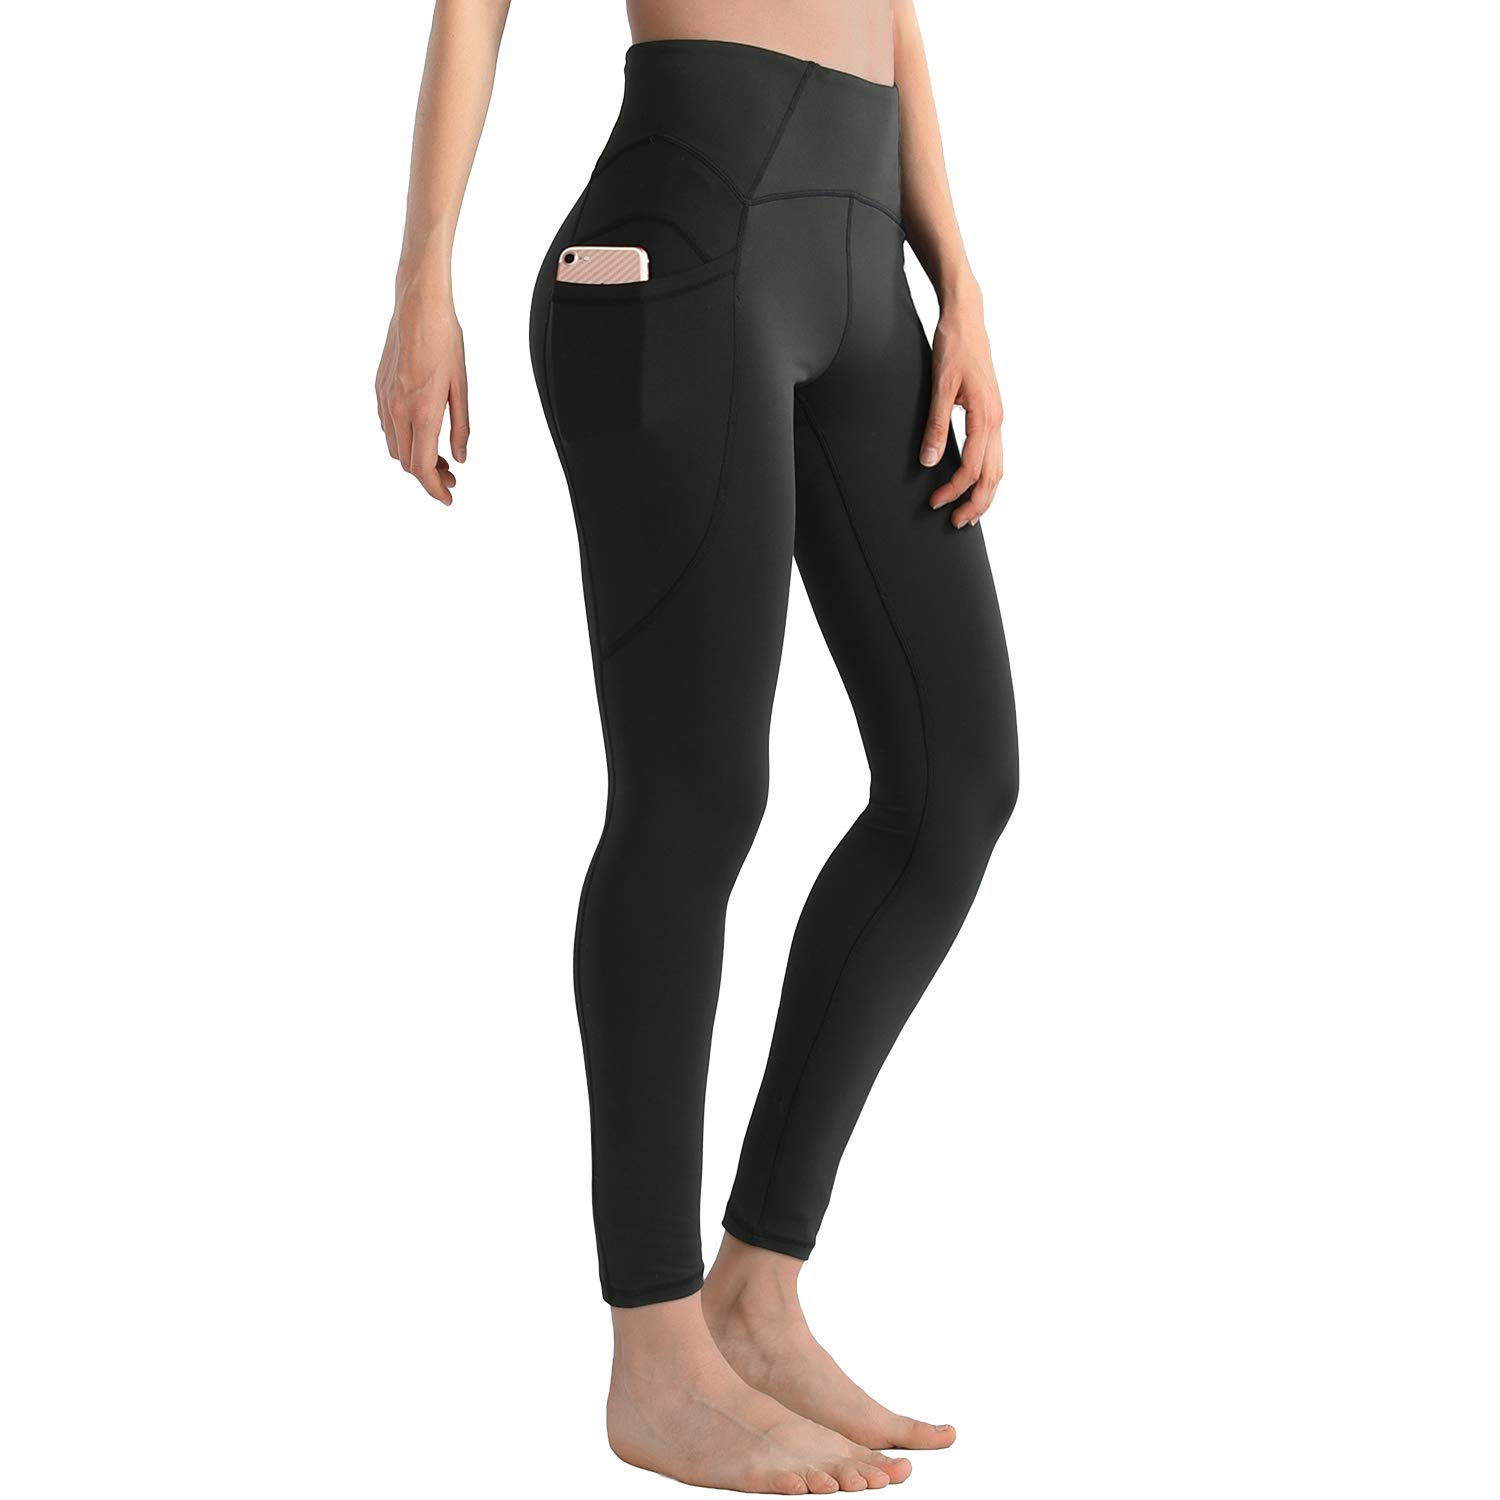 XDO High Waist Yoga Pants for Women with Pockets, Non See-Through Workout Sports Leggings 4 Way Stretch Tights(Black, Large)